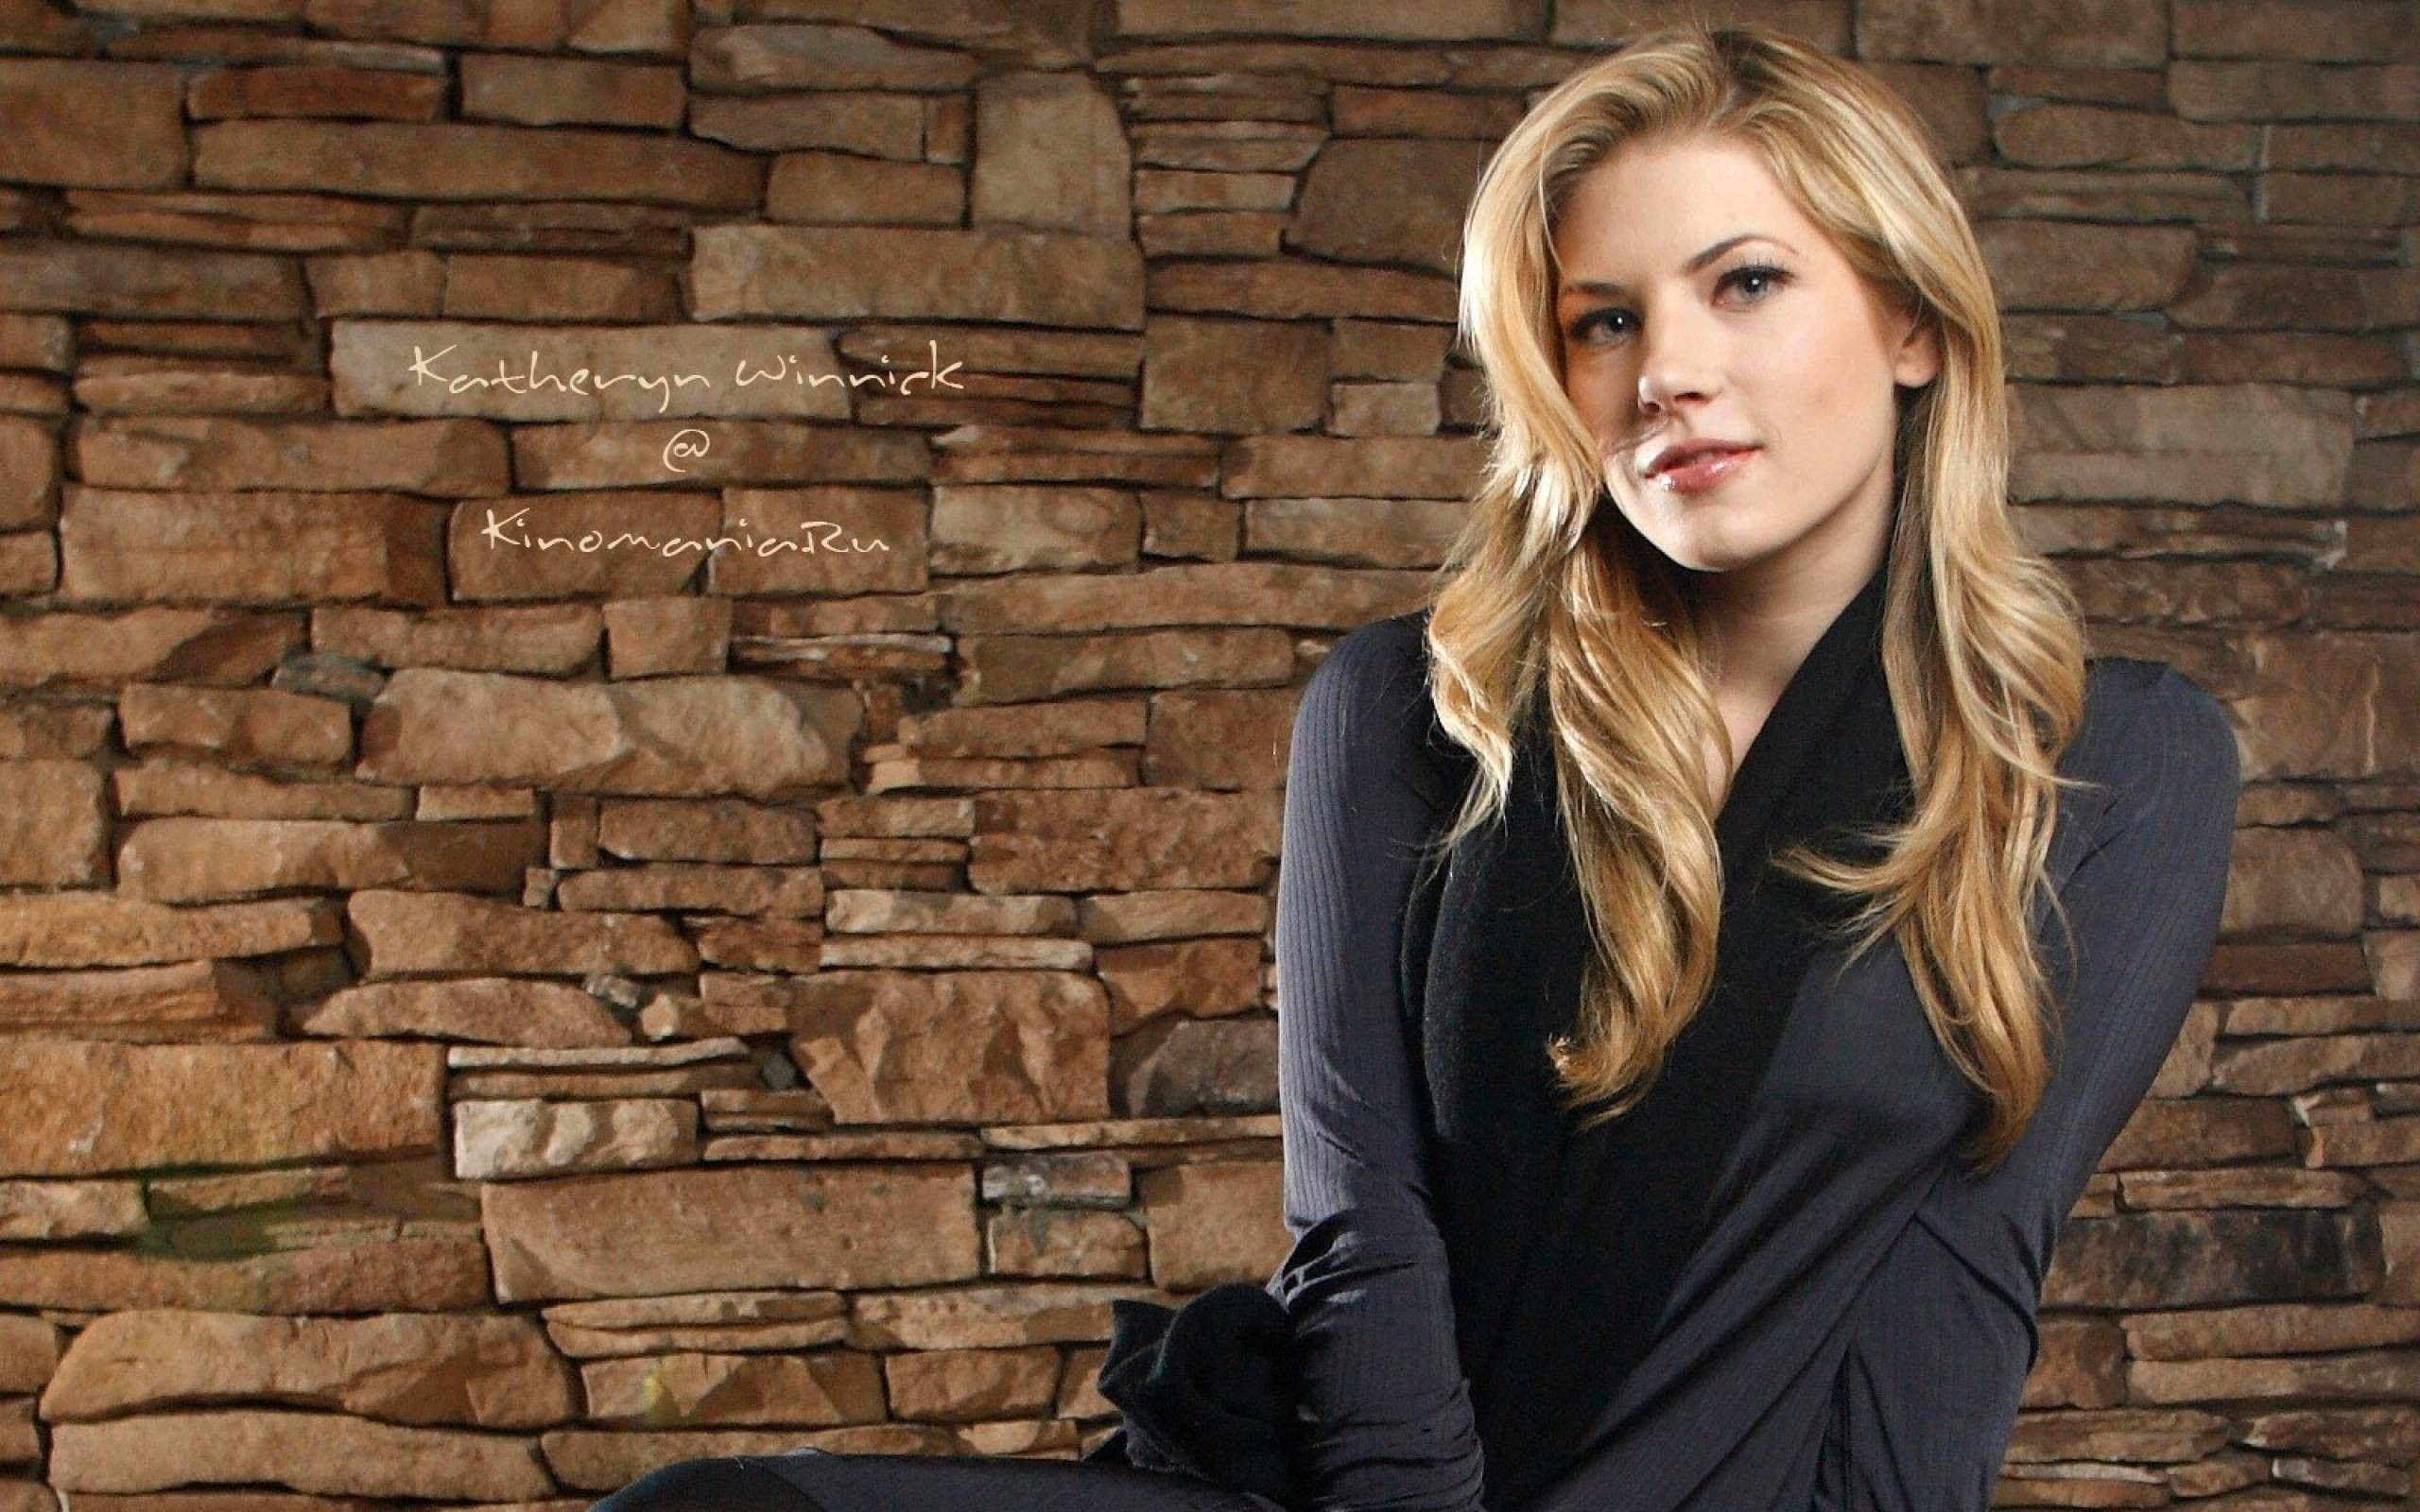 7 Awesome Katheryn Winnick Wallpapers Picture  #katheryn #winnick #wallpaper